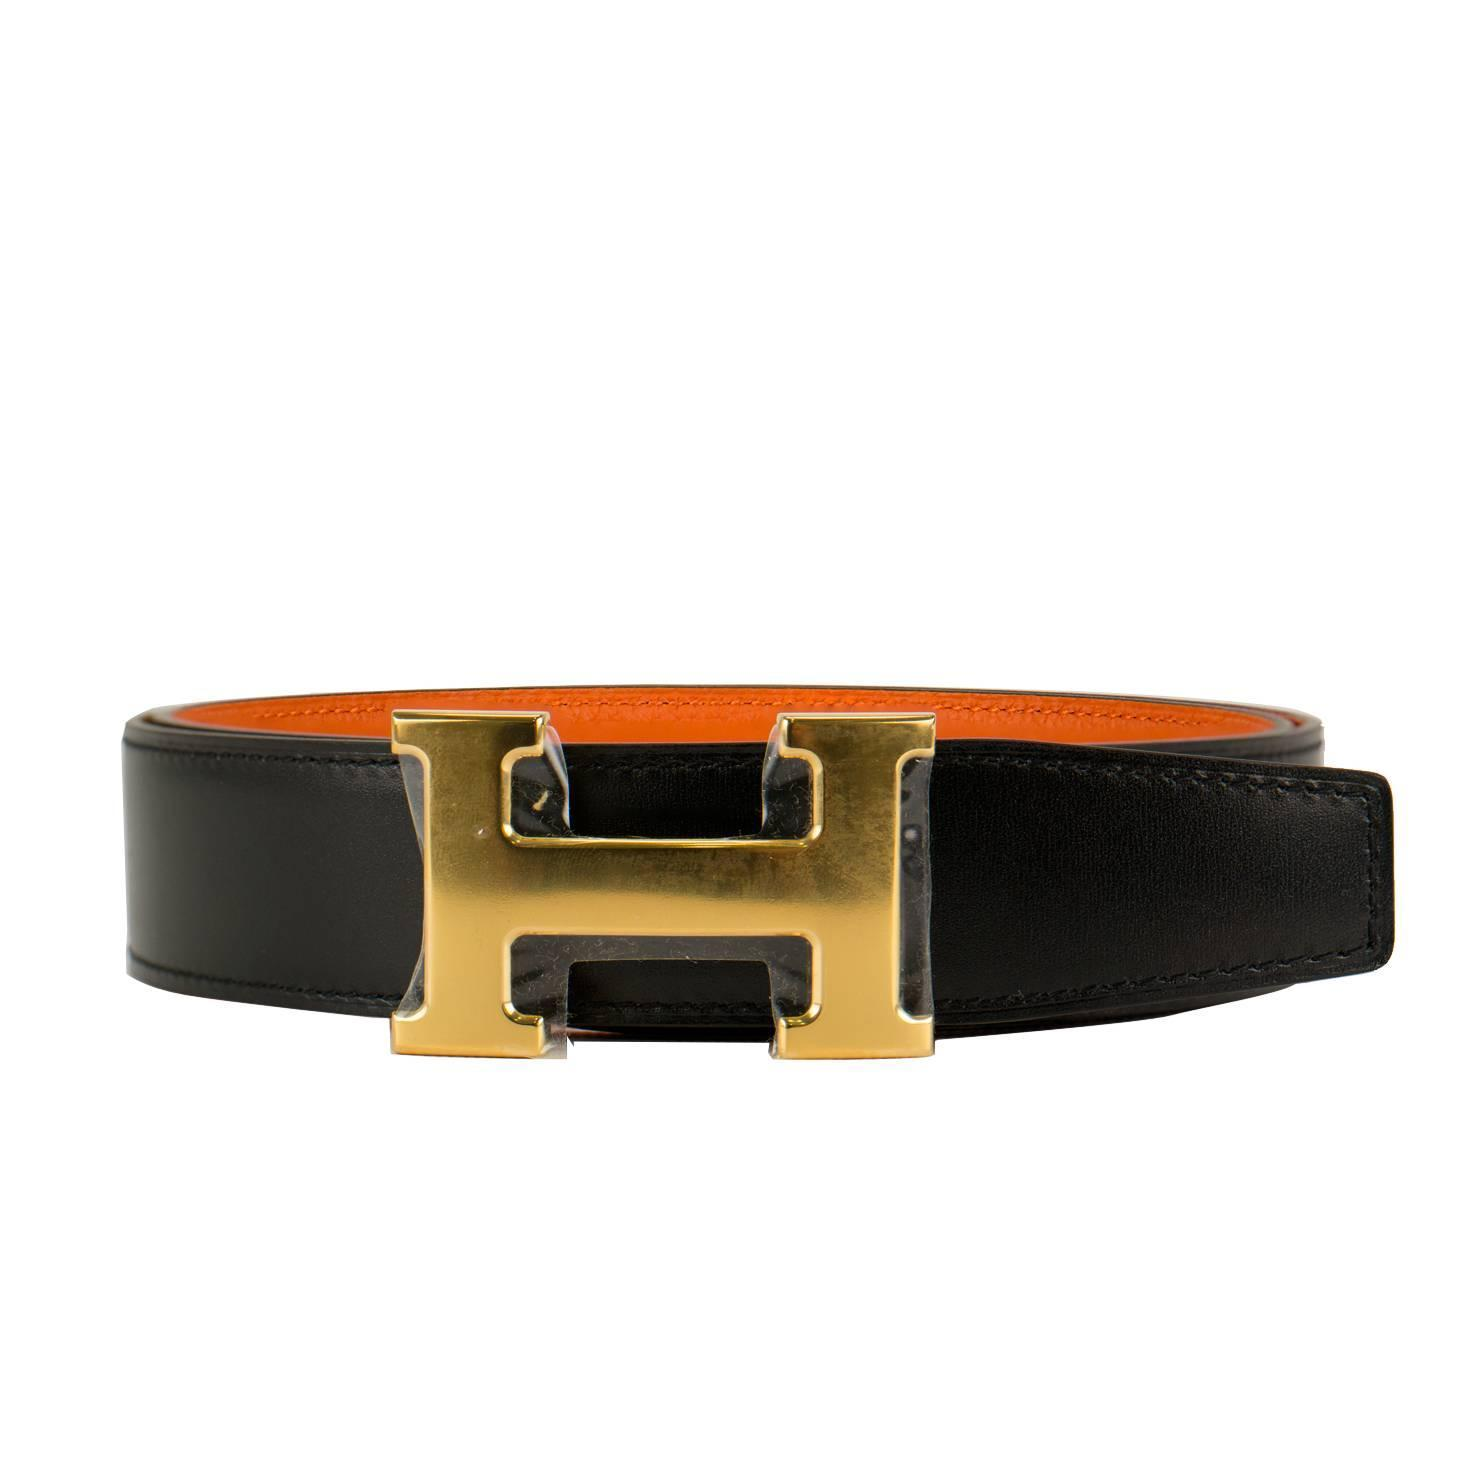 hermes belt h 32mm box togo noir orange size 85 boucle gold 2016 at 1stdibs. Black Bedroom Furniture Sets. Home Design Ideas